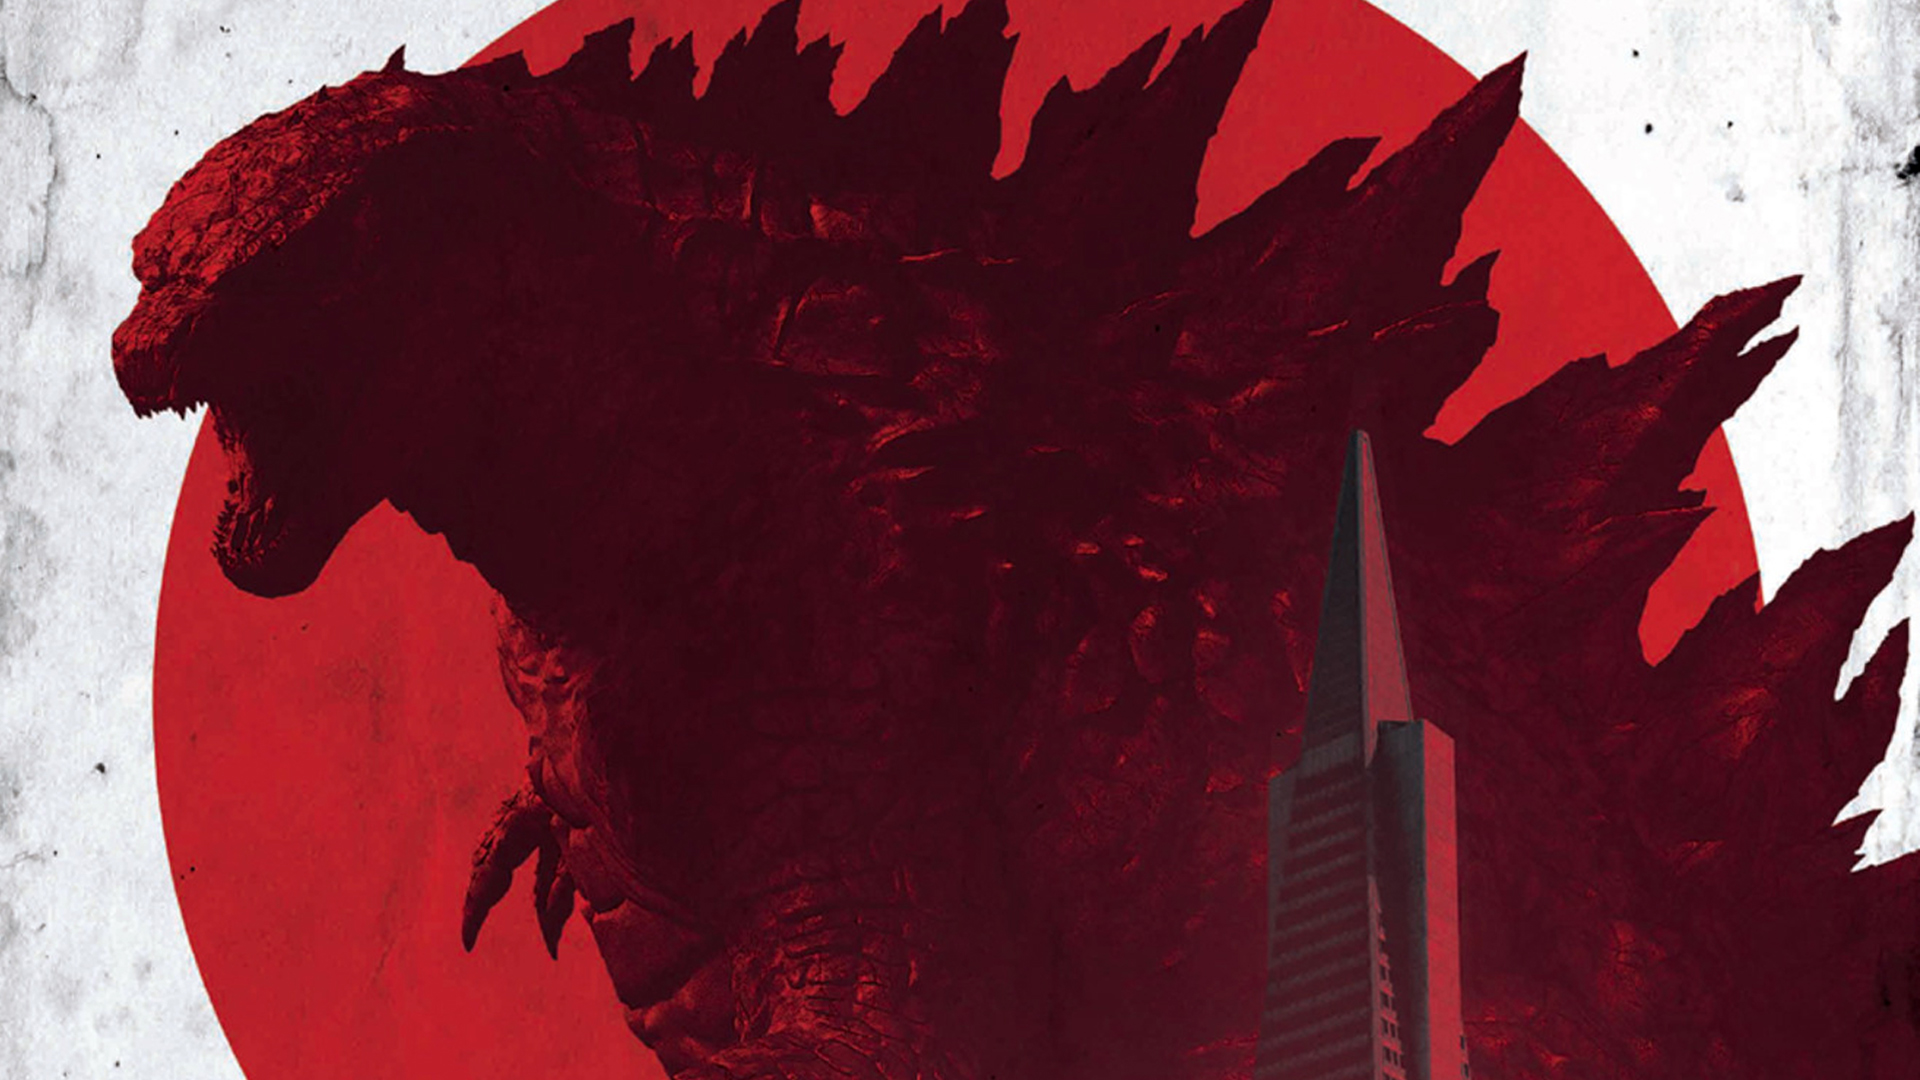 Godzilla 2014 Movie Wallpaper Godzilla 2014 Movie 01...